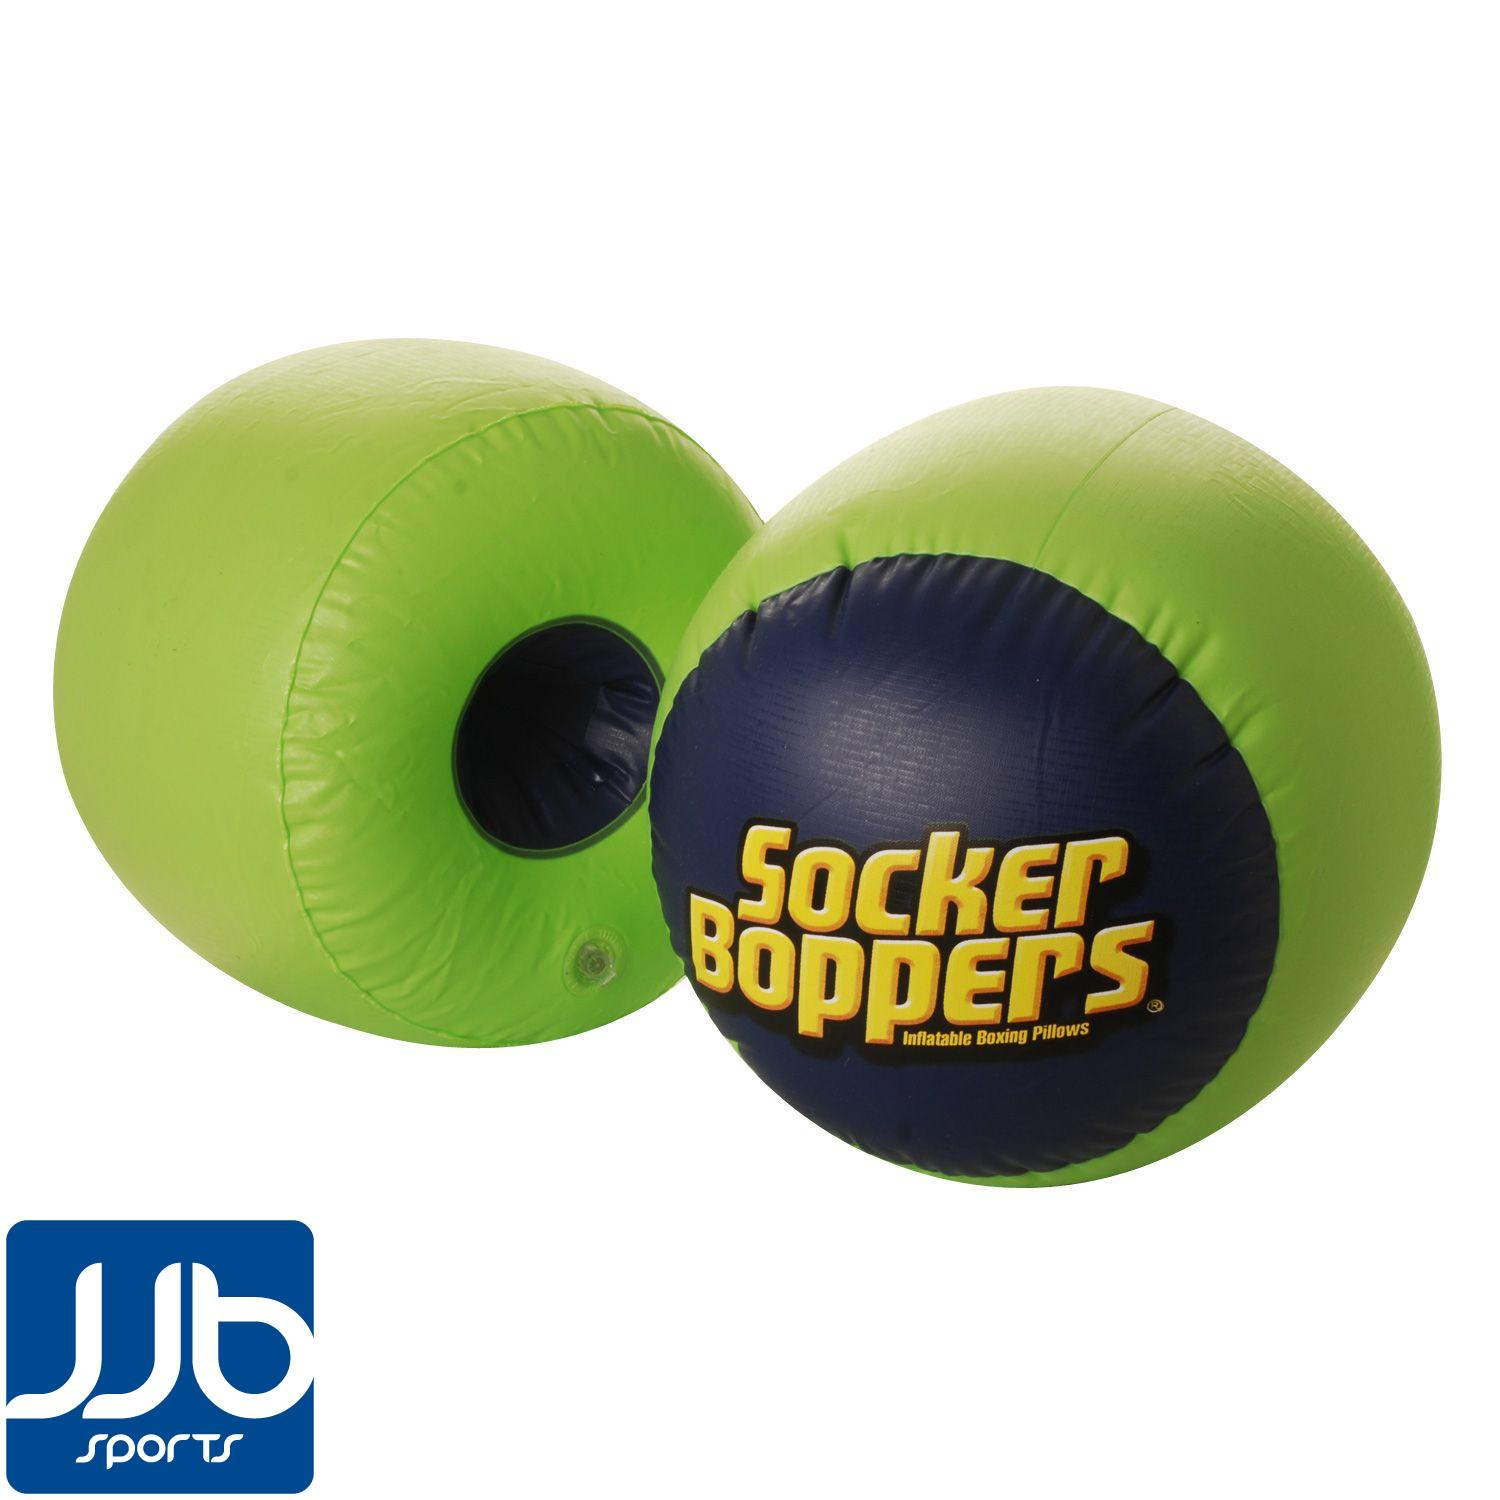 Wicked-Socker-Boppers-Inflatable-Boxing-Pillows